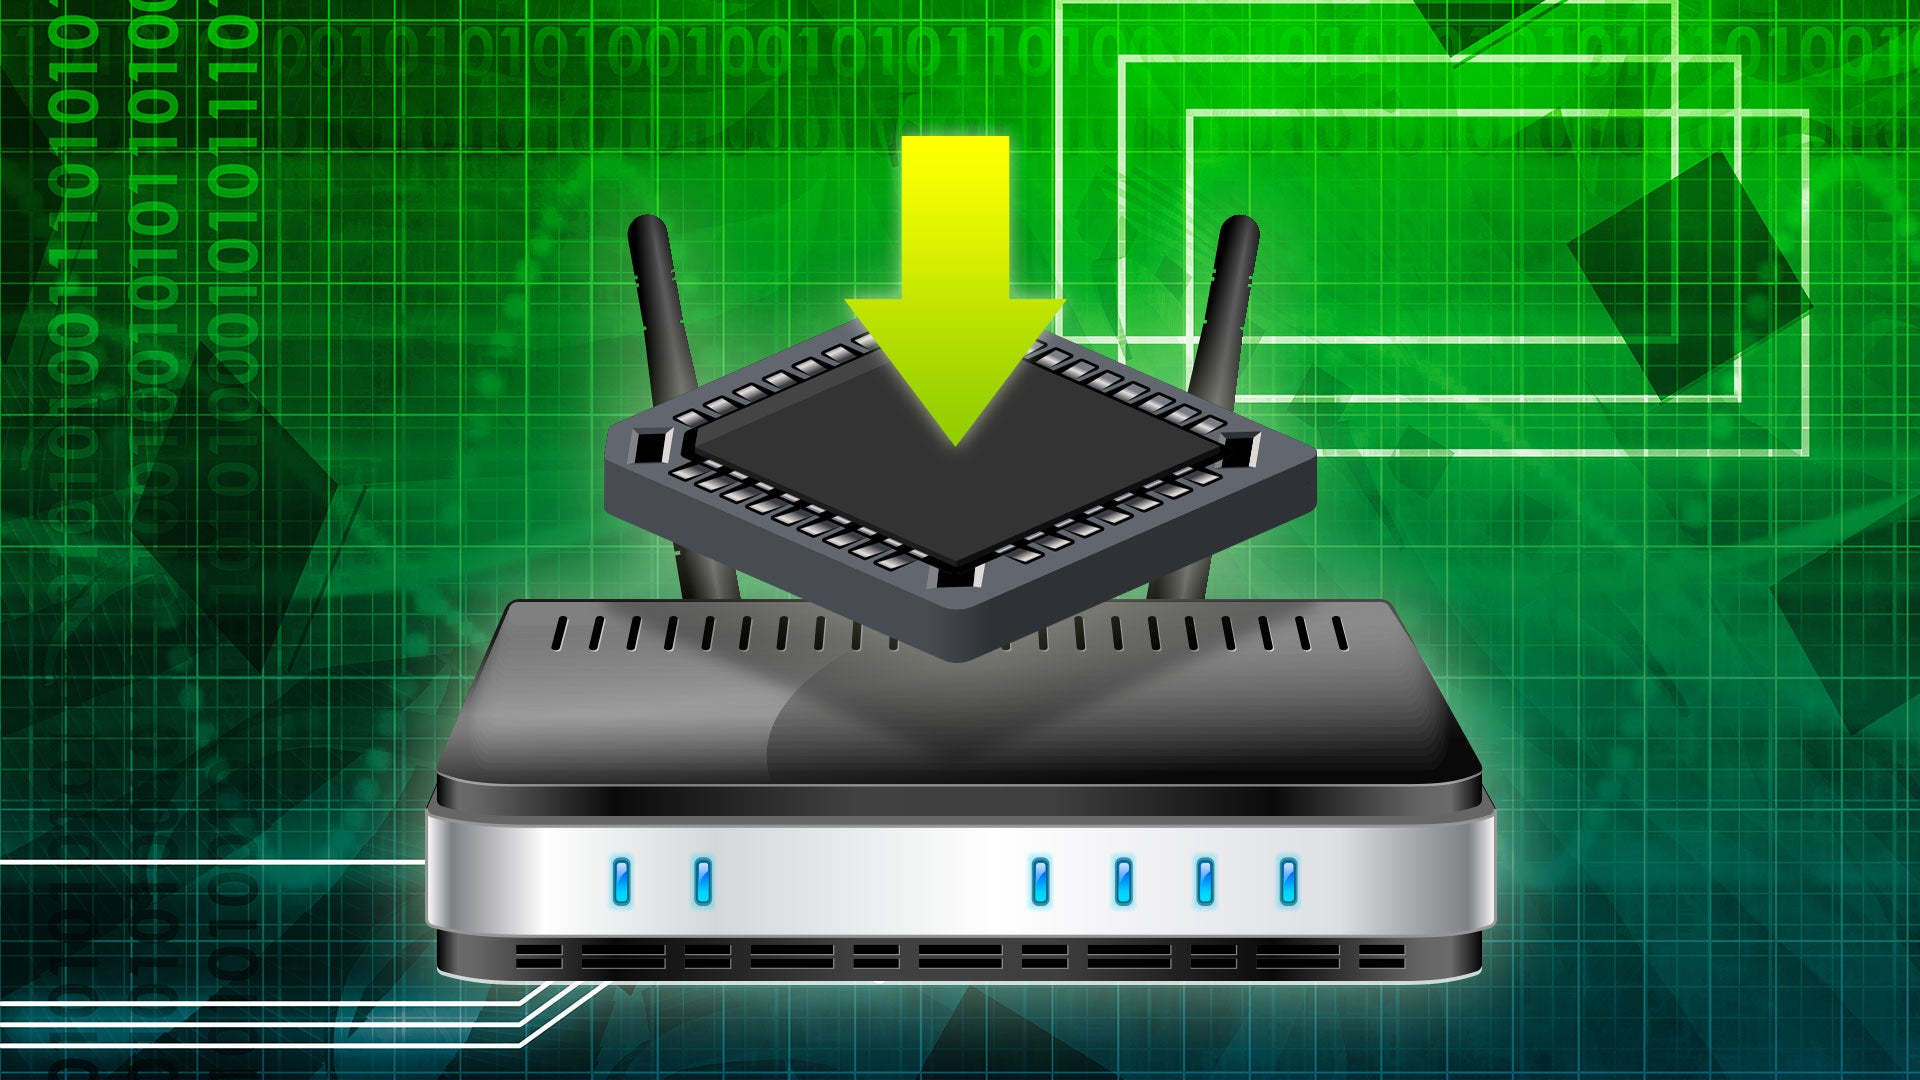 How To Choose The Best Firmware To Supercharge Your Wi-Fi Router